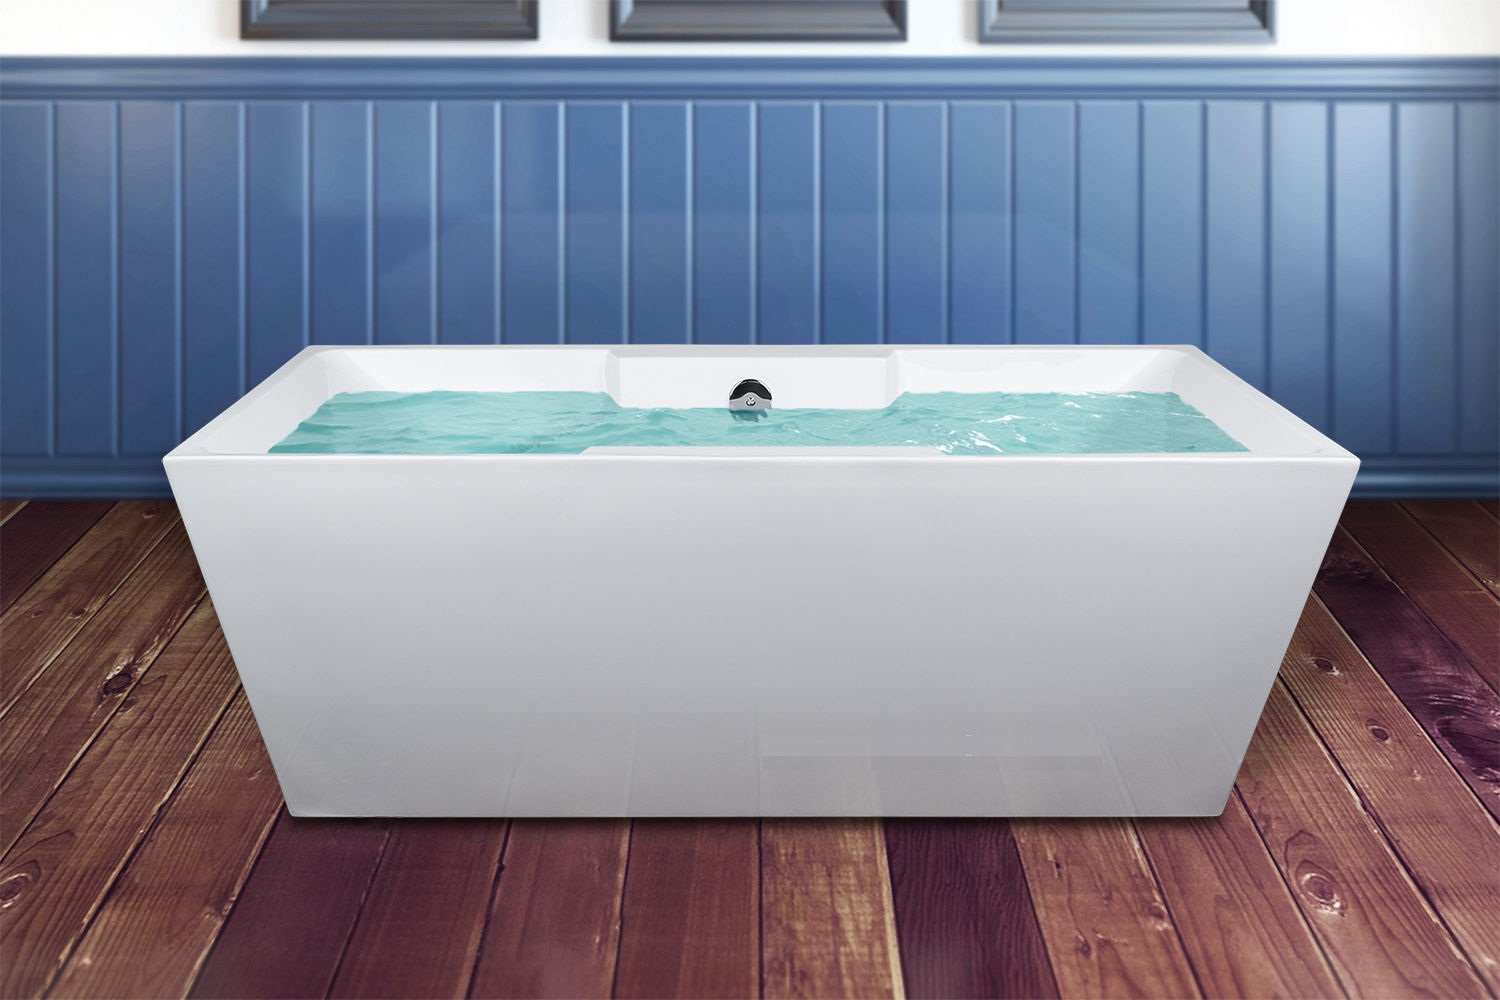 Modern Soaking Spa Freestanding Bathtub Acrylic Bathroom Shower Bathtub